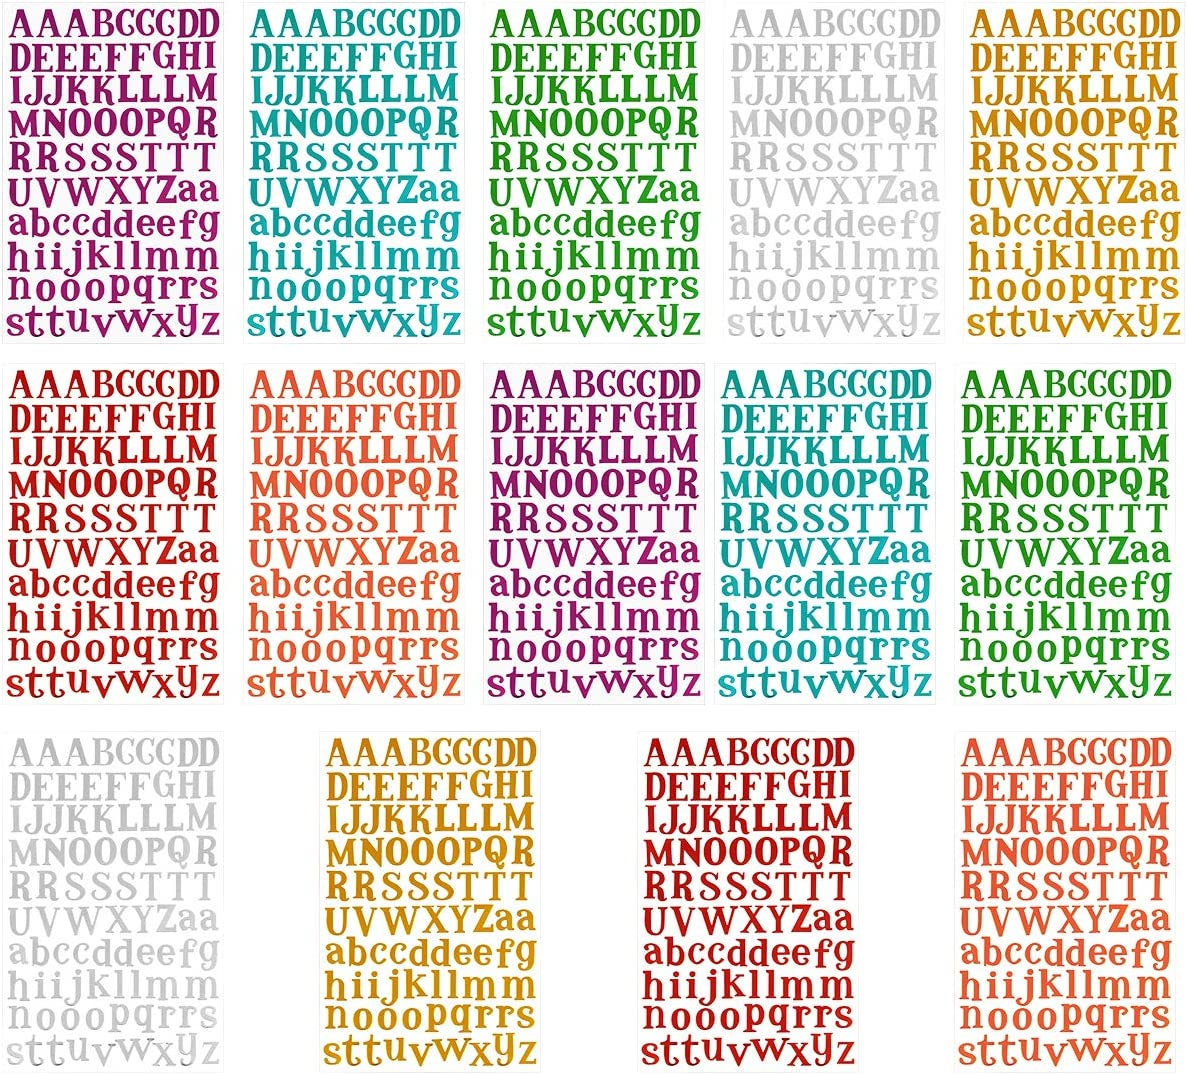 MADHOLLY 14 Sheets Letter Gift Alphabet Sticker Colorful Self Adhesive Letter